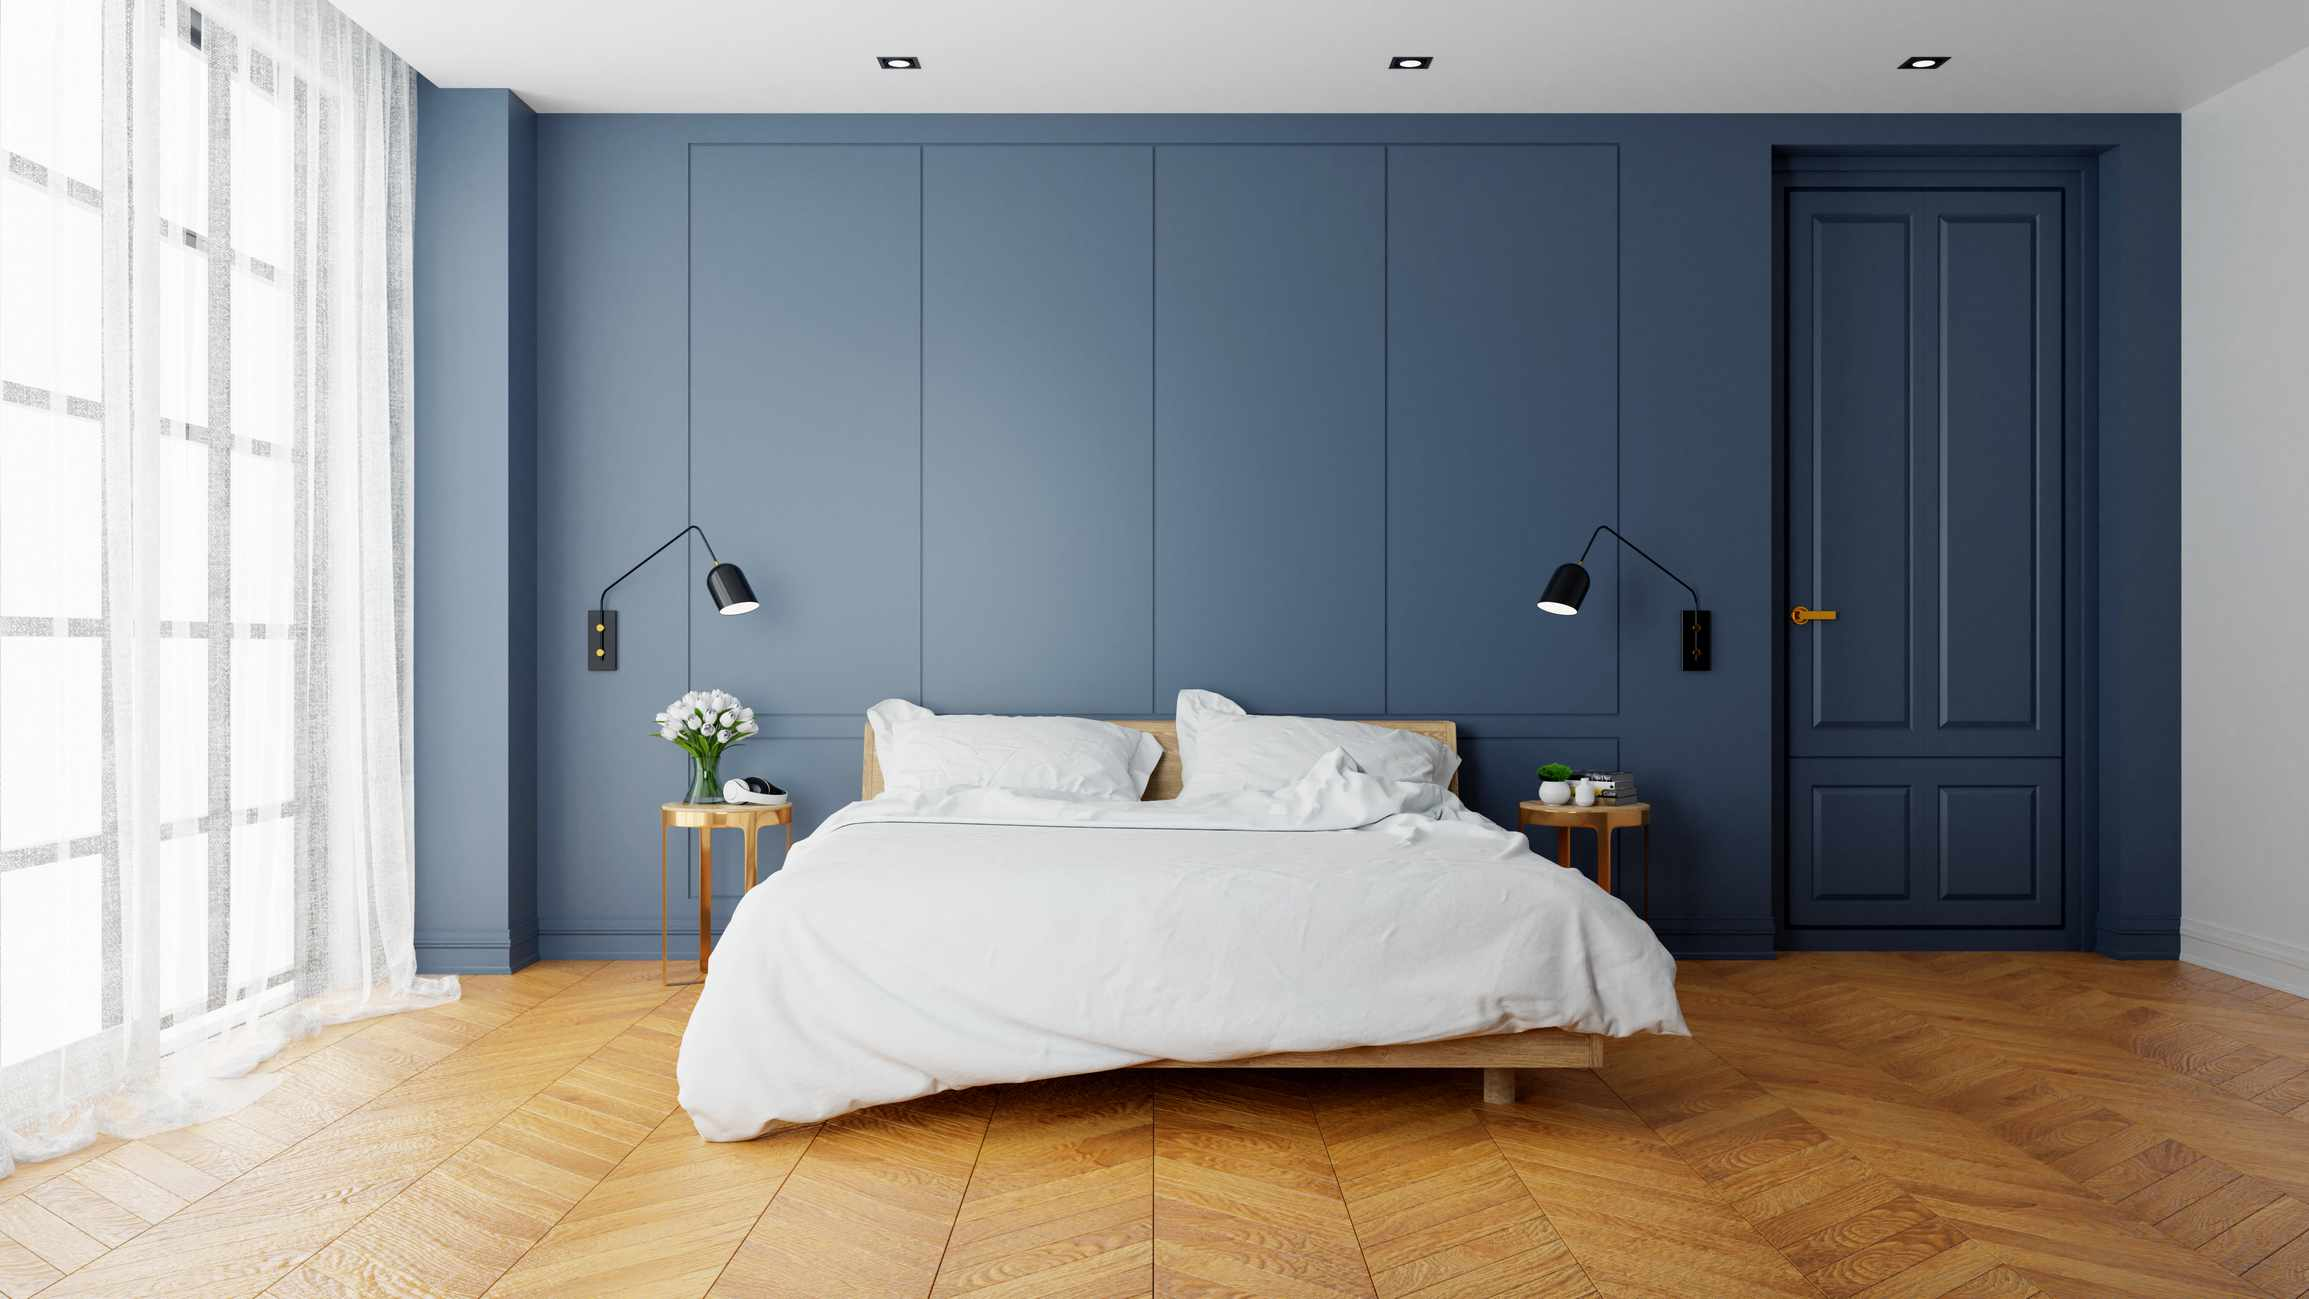 A soothing blue bedroom with a white bed.